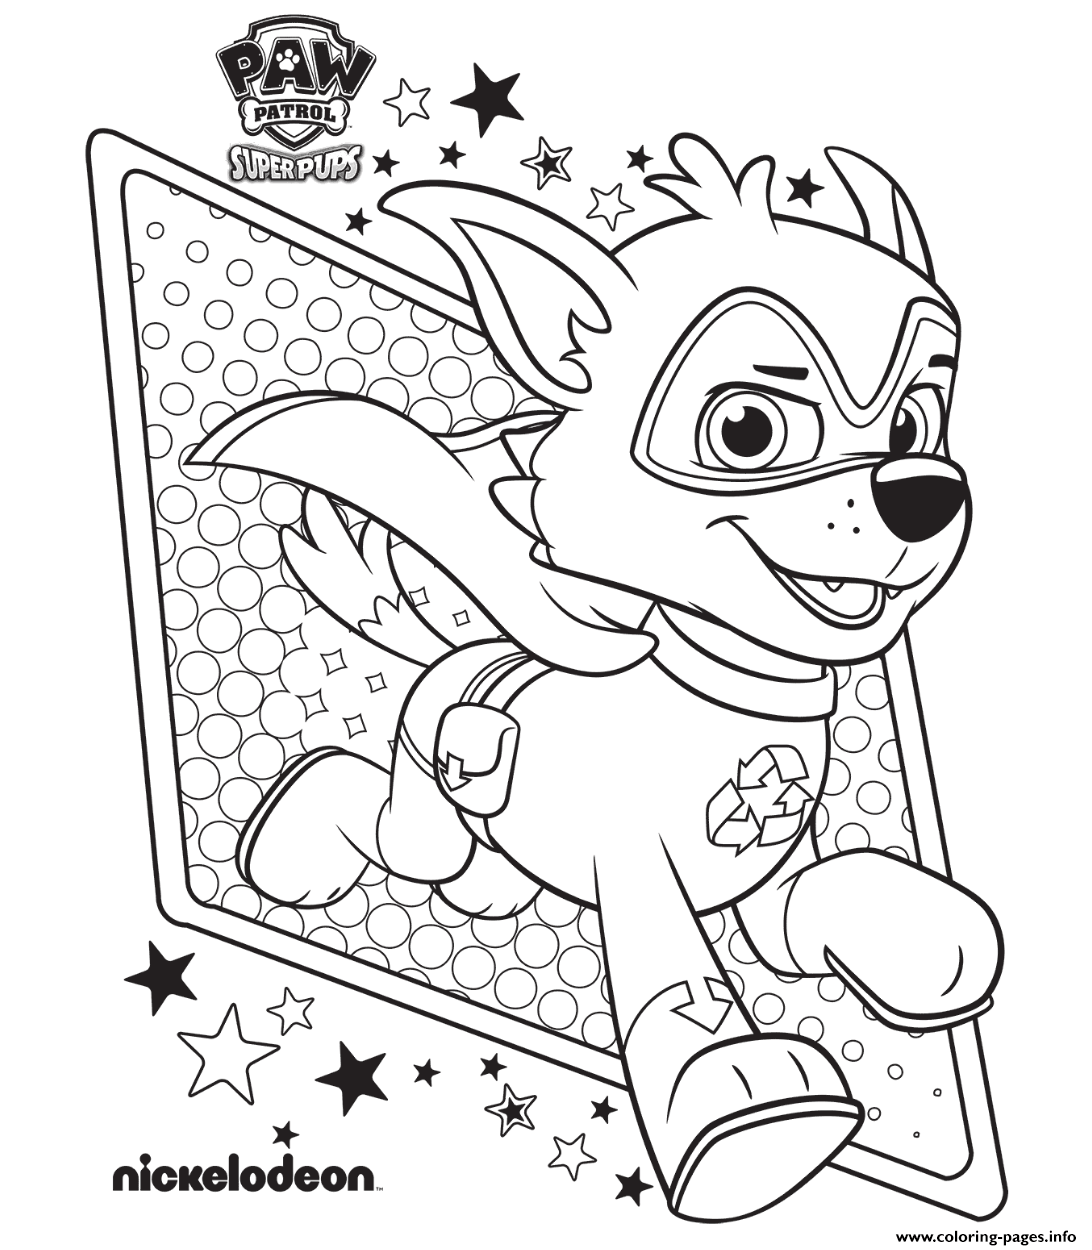 Paw Patrol Super Pups Free Coloring Pages Printable